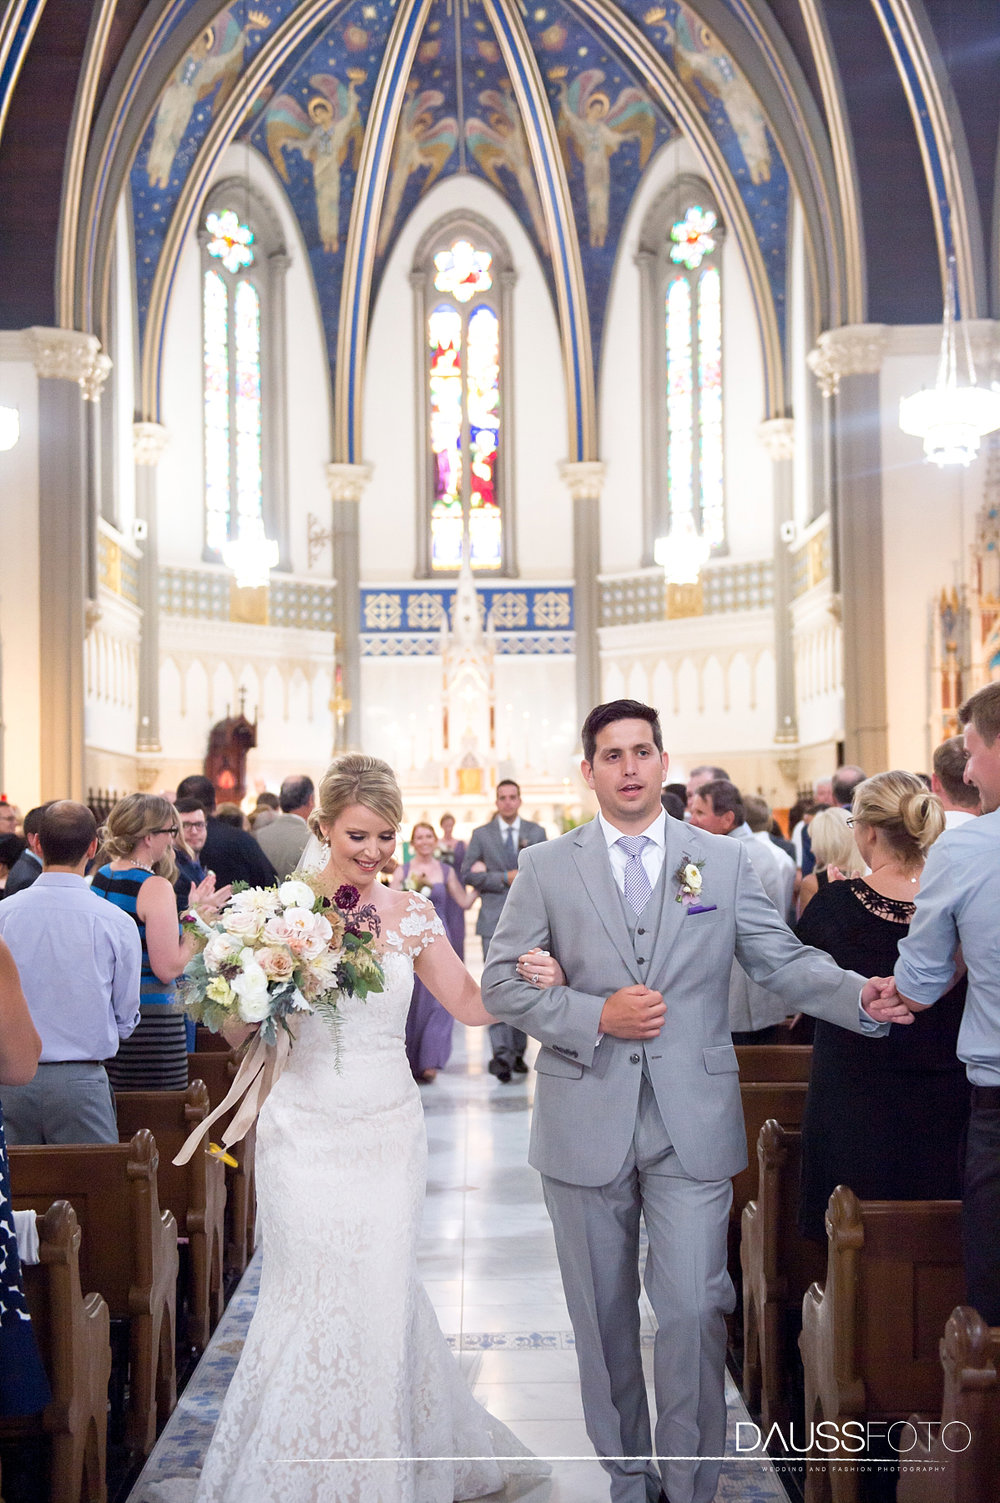 DaussFOTO_20160625_0297_Indiana Wedding Photographer_Crowne Plaza at Historic Union Station.jpg